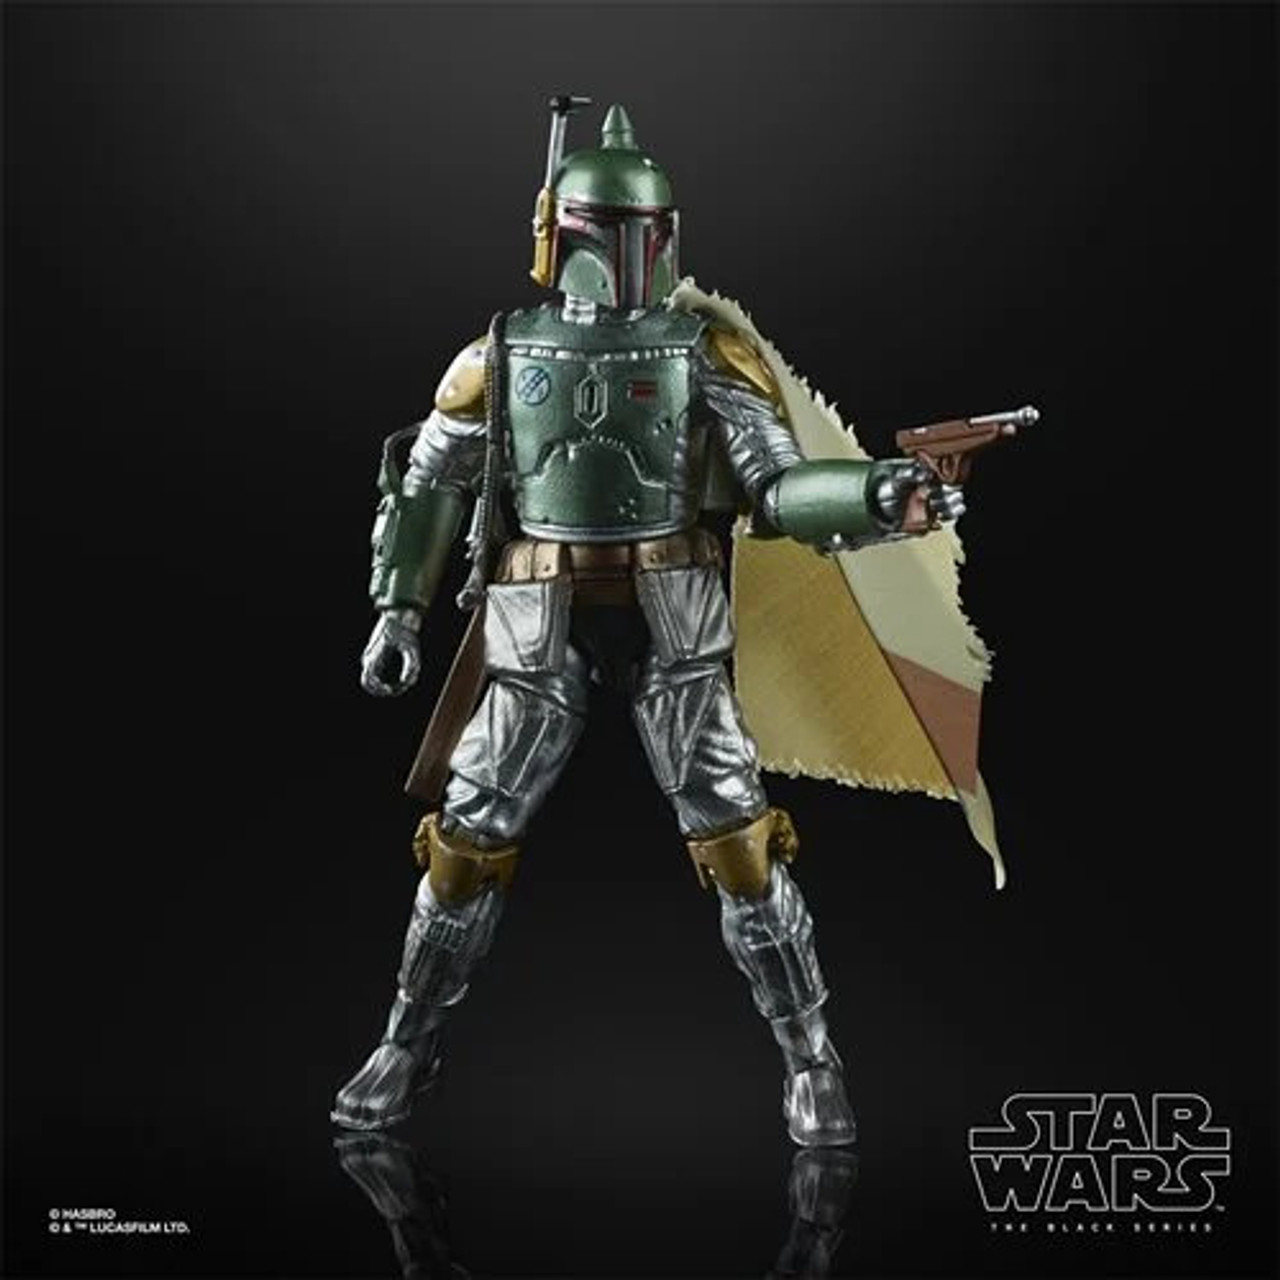 Star Wars ~ The Black Series ~ Carbonized Boba Fett 6-Inch Action Figure